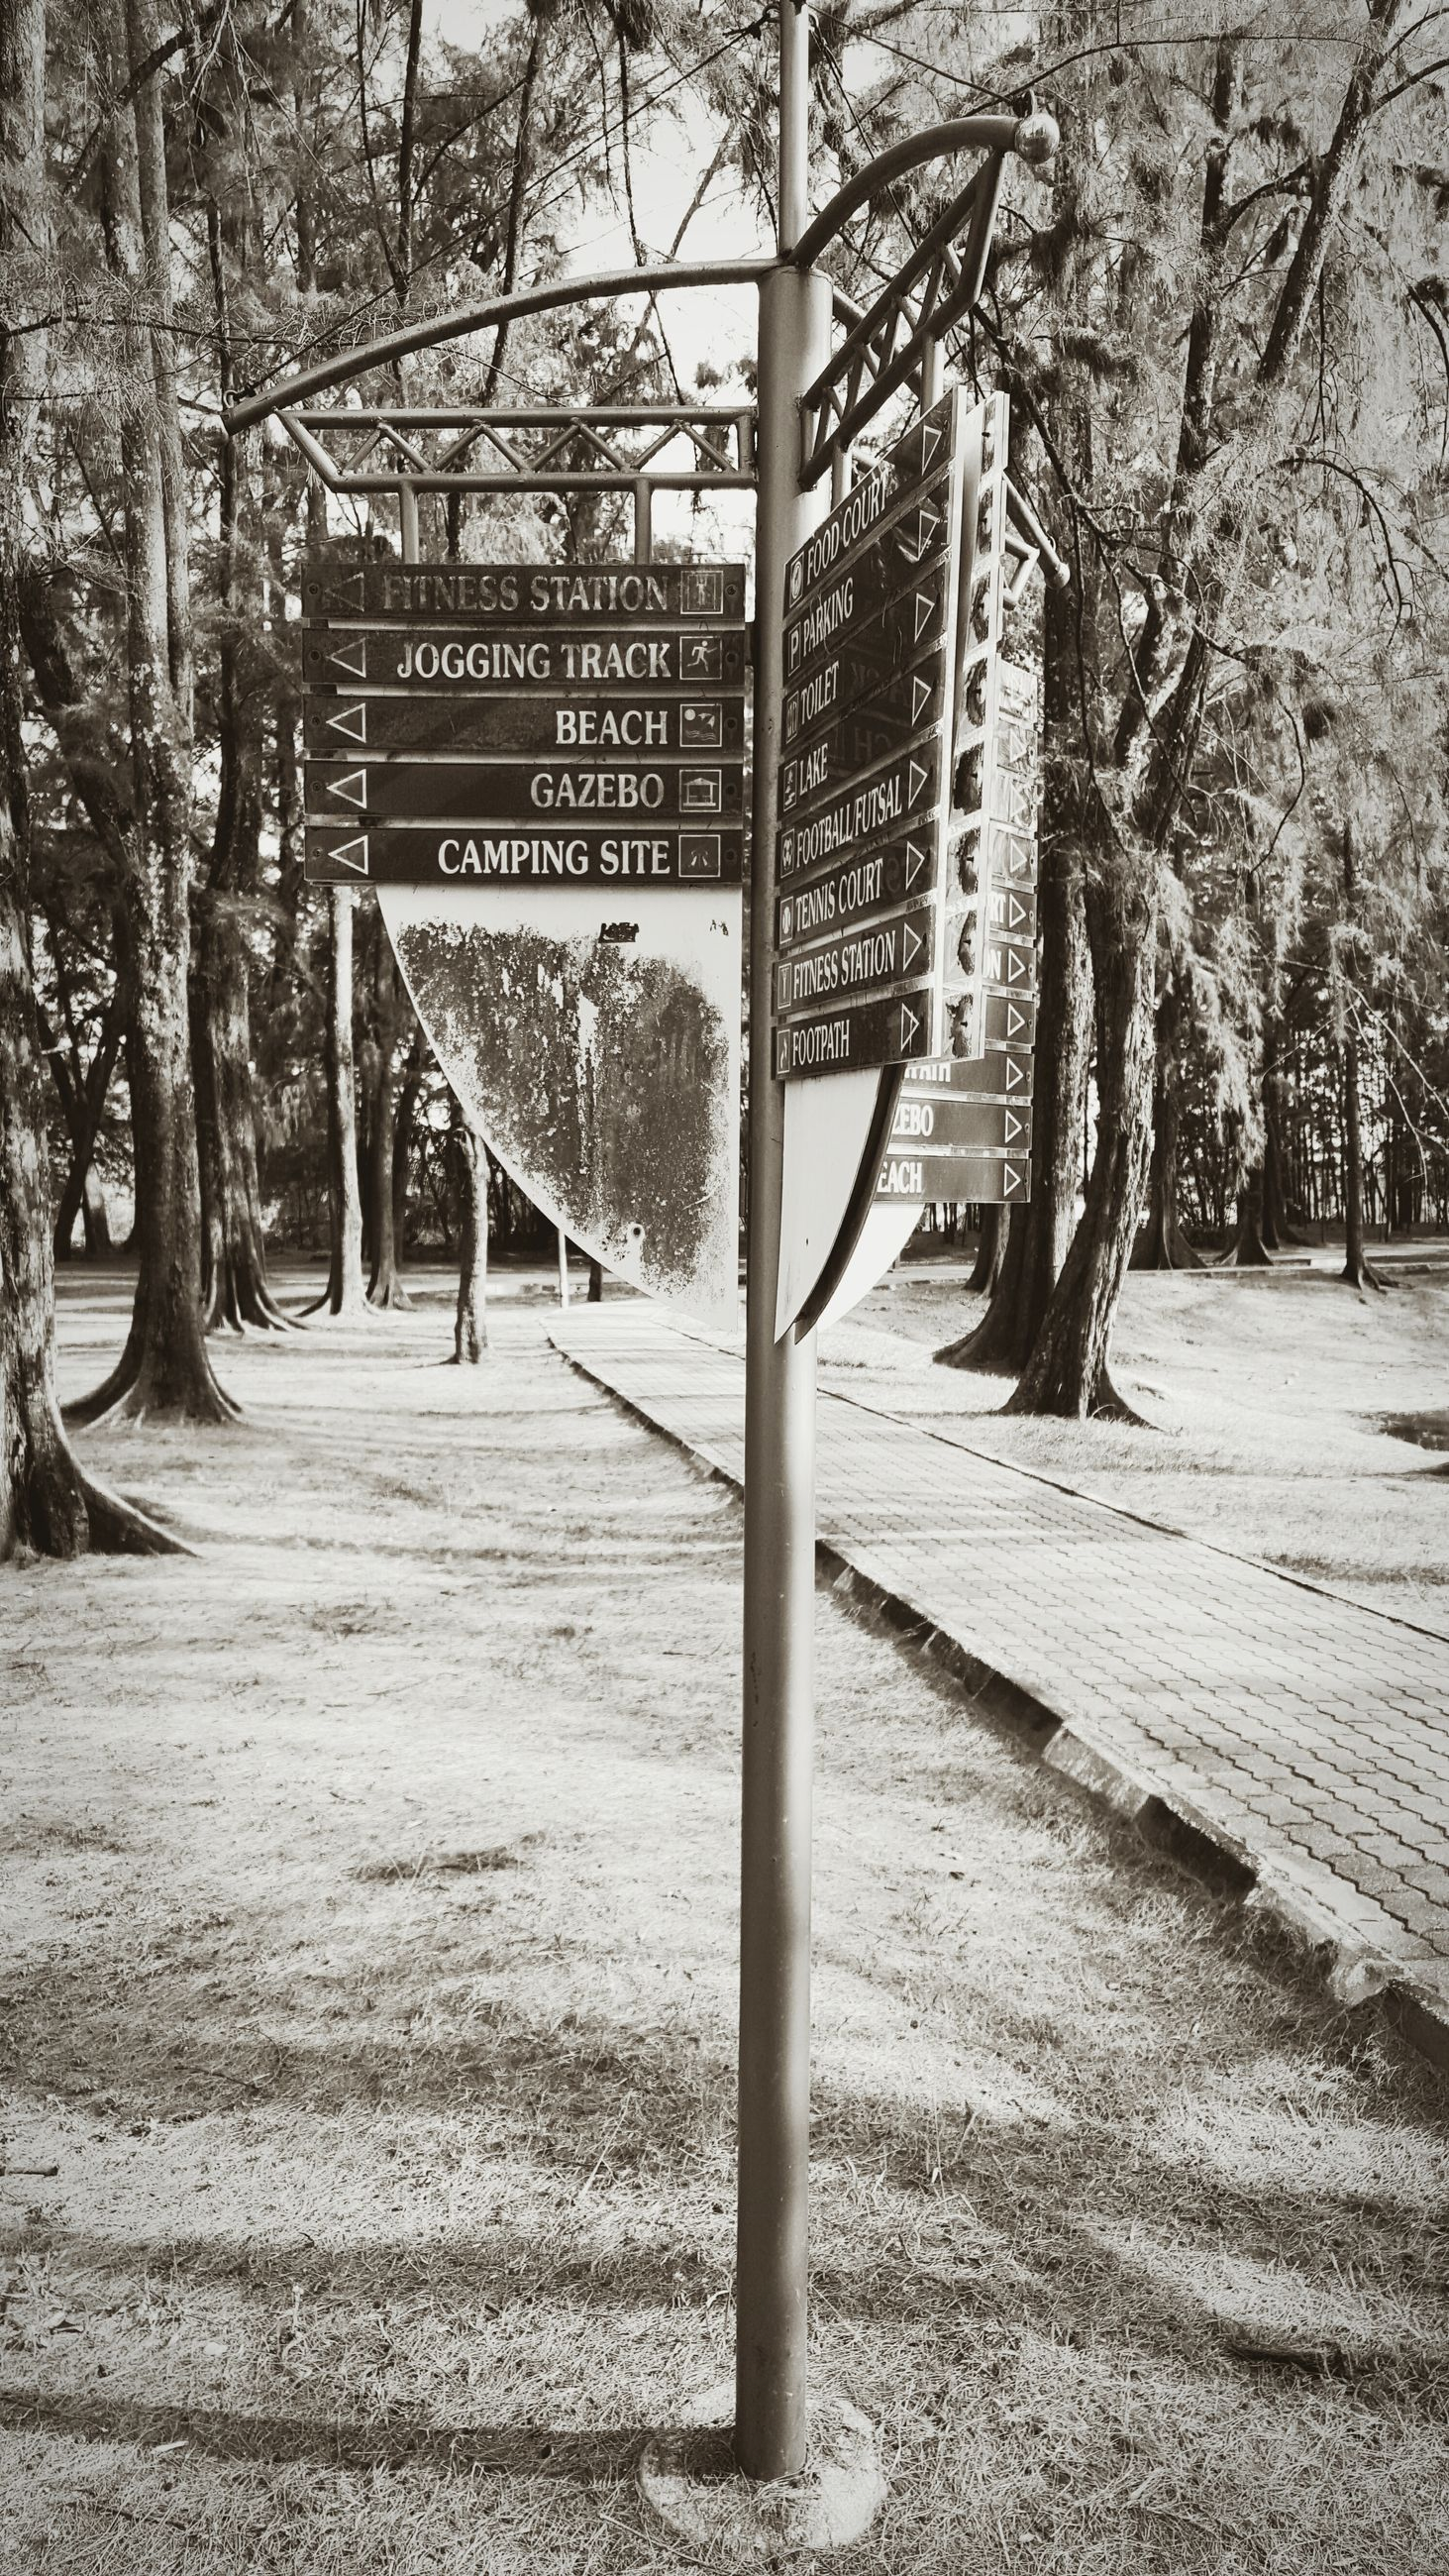 tree, bare tree, text, tree trunk, fence, empty, the way forward, day, communication, park - man made space, shadow, sunlight, branch, absence, western script, transportation, outdoors, built structure, safety, footpath